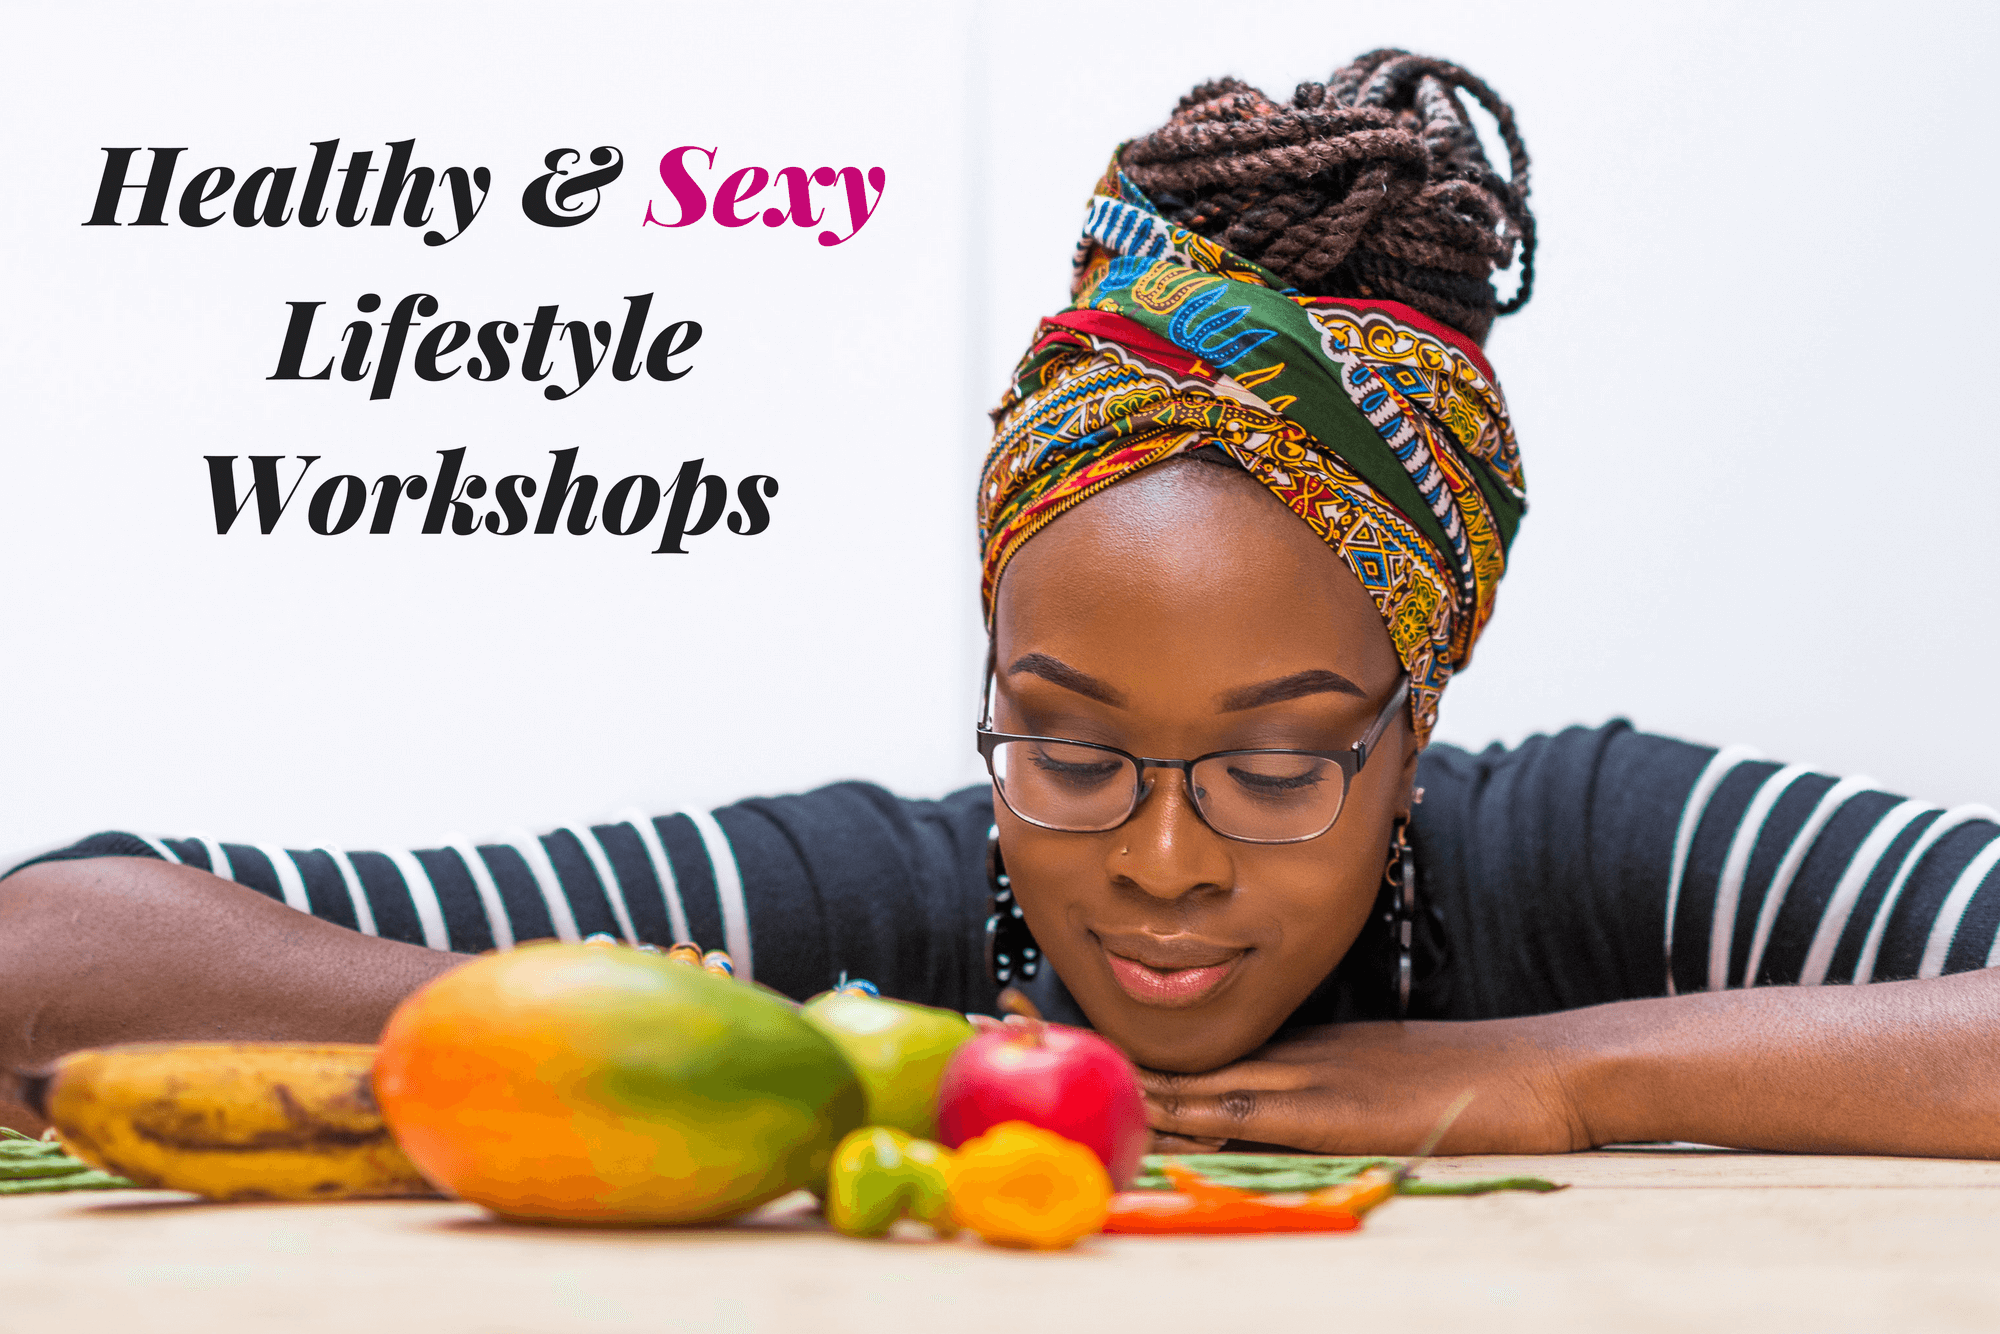 Viva la Vive Healthy-en-Sexy-Lifestyle-Workshops-Viva-la-Vive-Vivian-Acquah Workshops    %site_name, %name, %title, tegory, Vivian Acquah, Nutrition Advocate